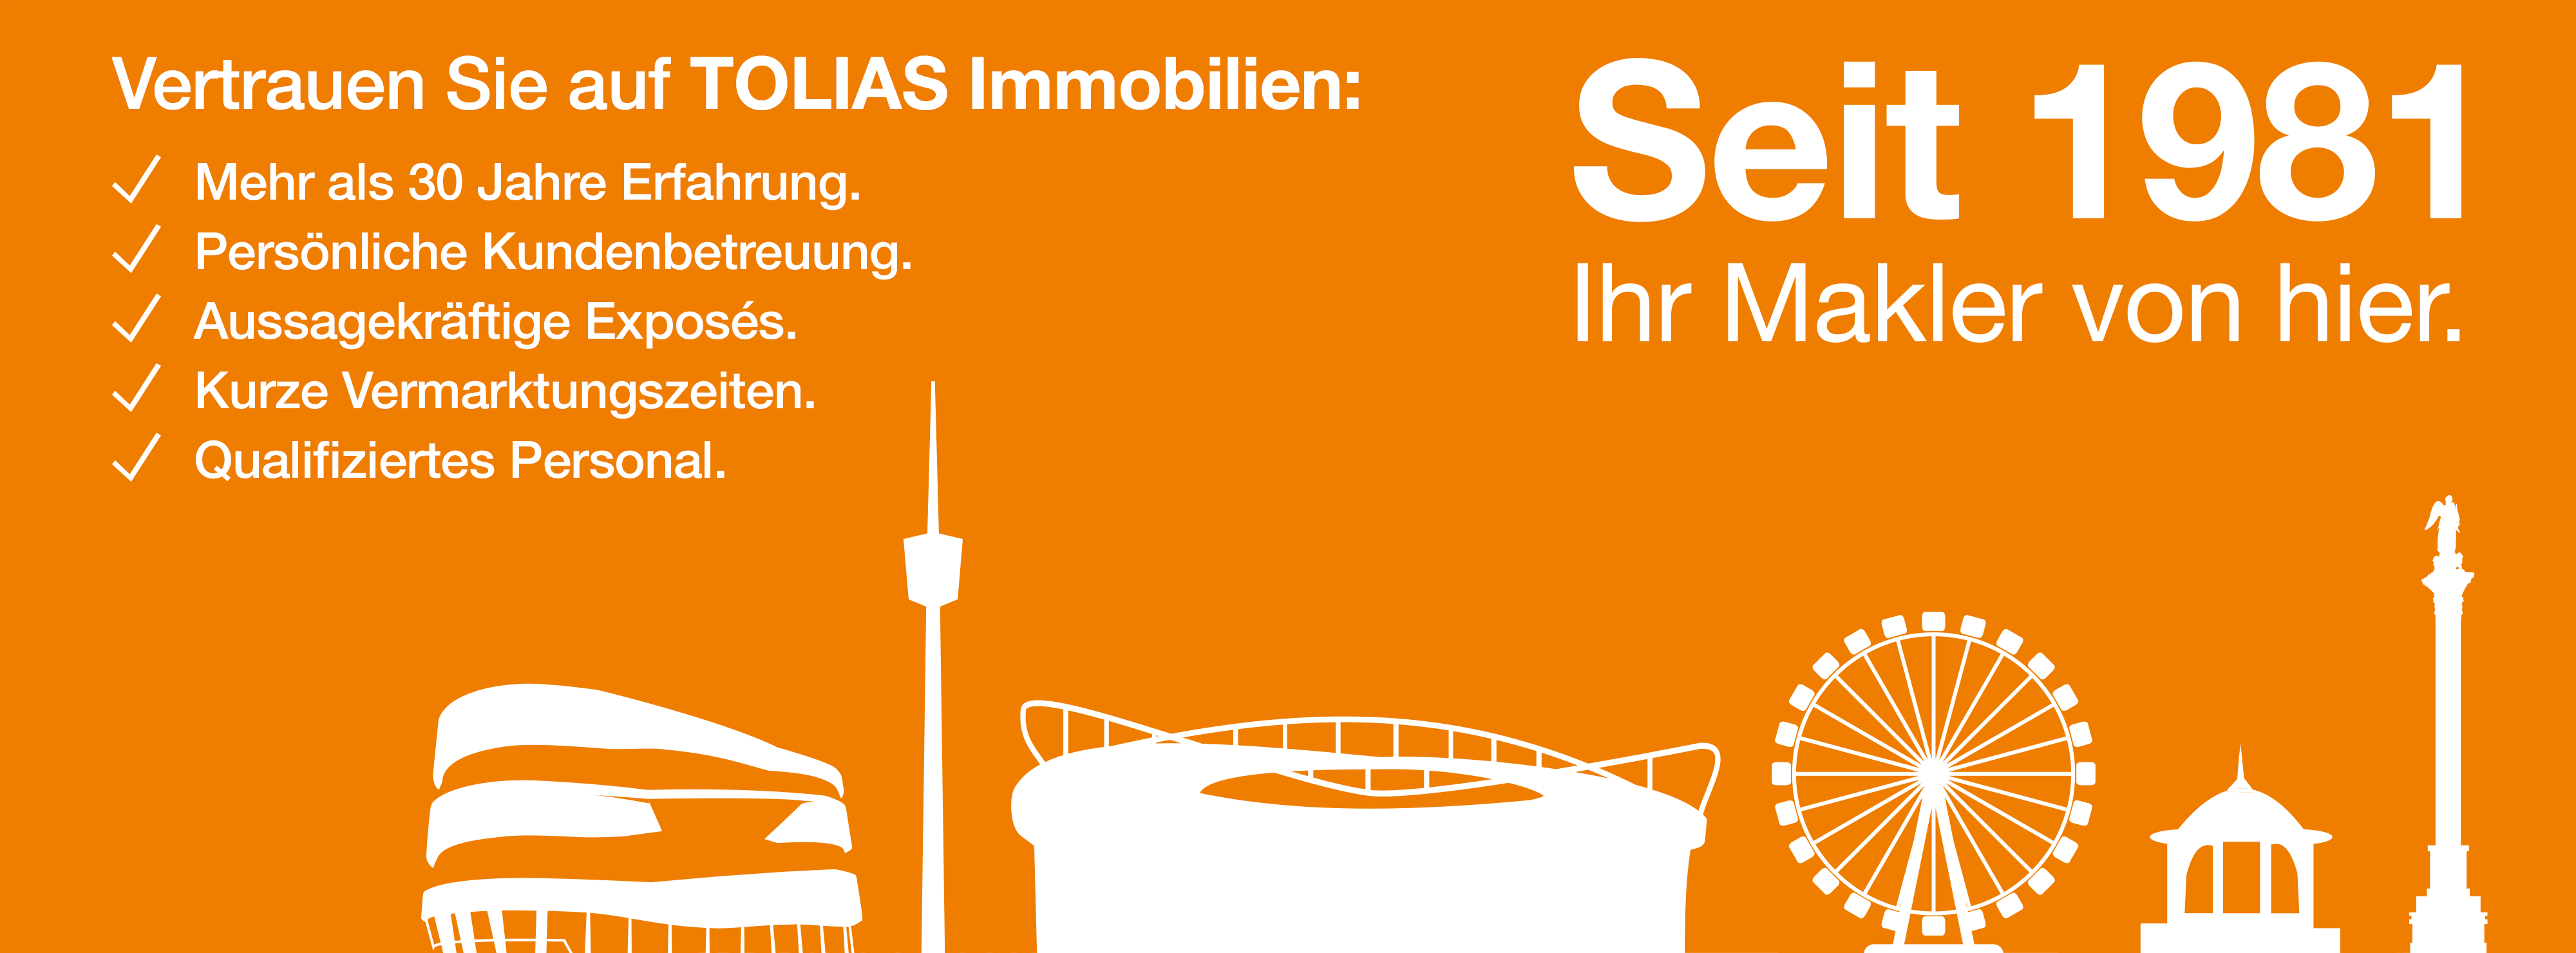 TOLIAS Immobilien GmbH